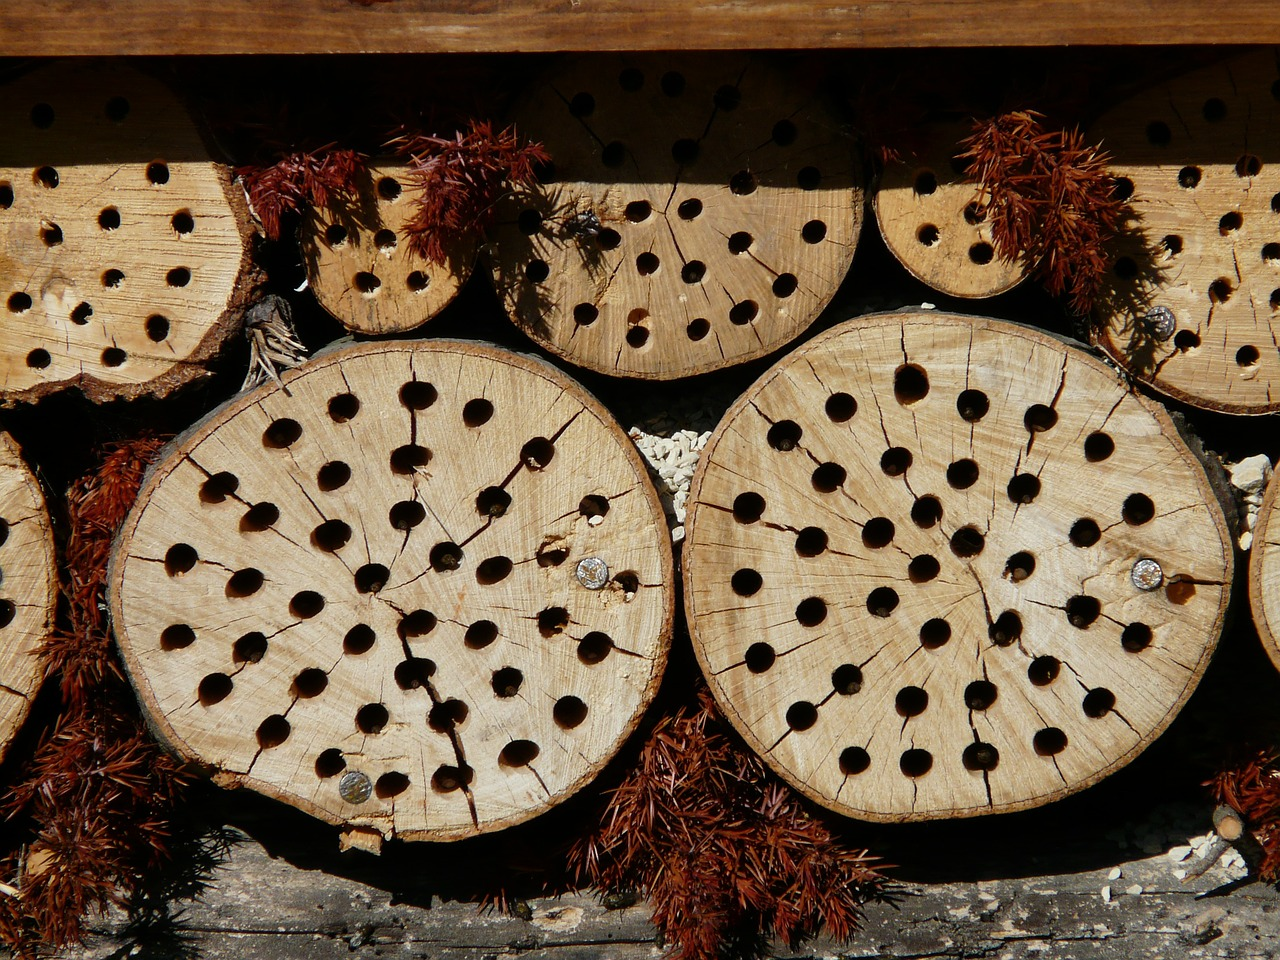 tree grates drill holes insect hotel free photo